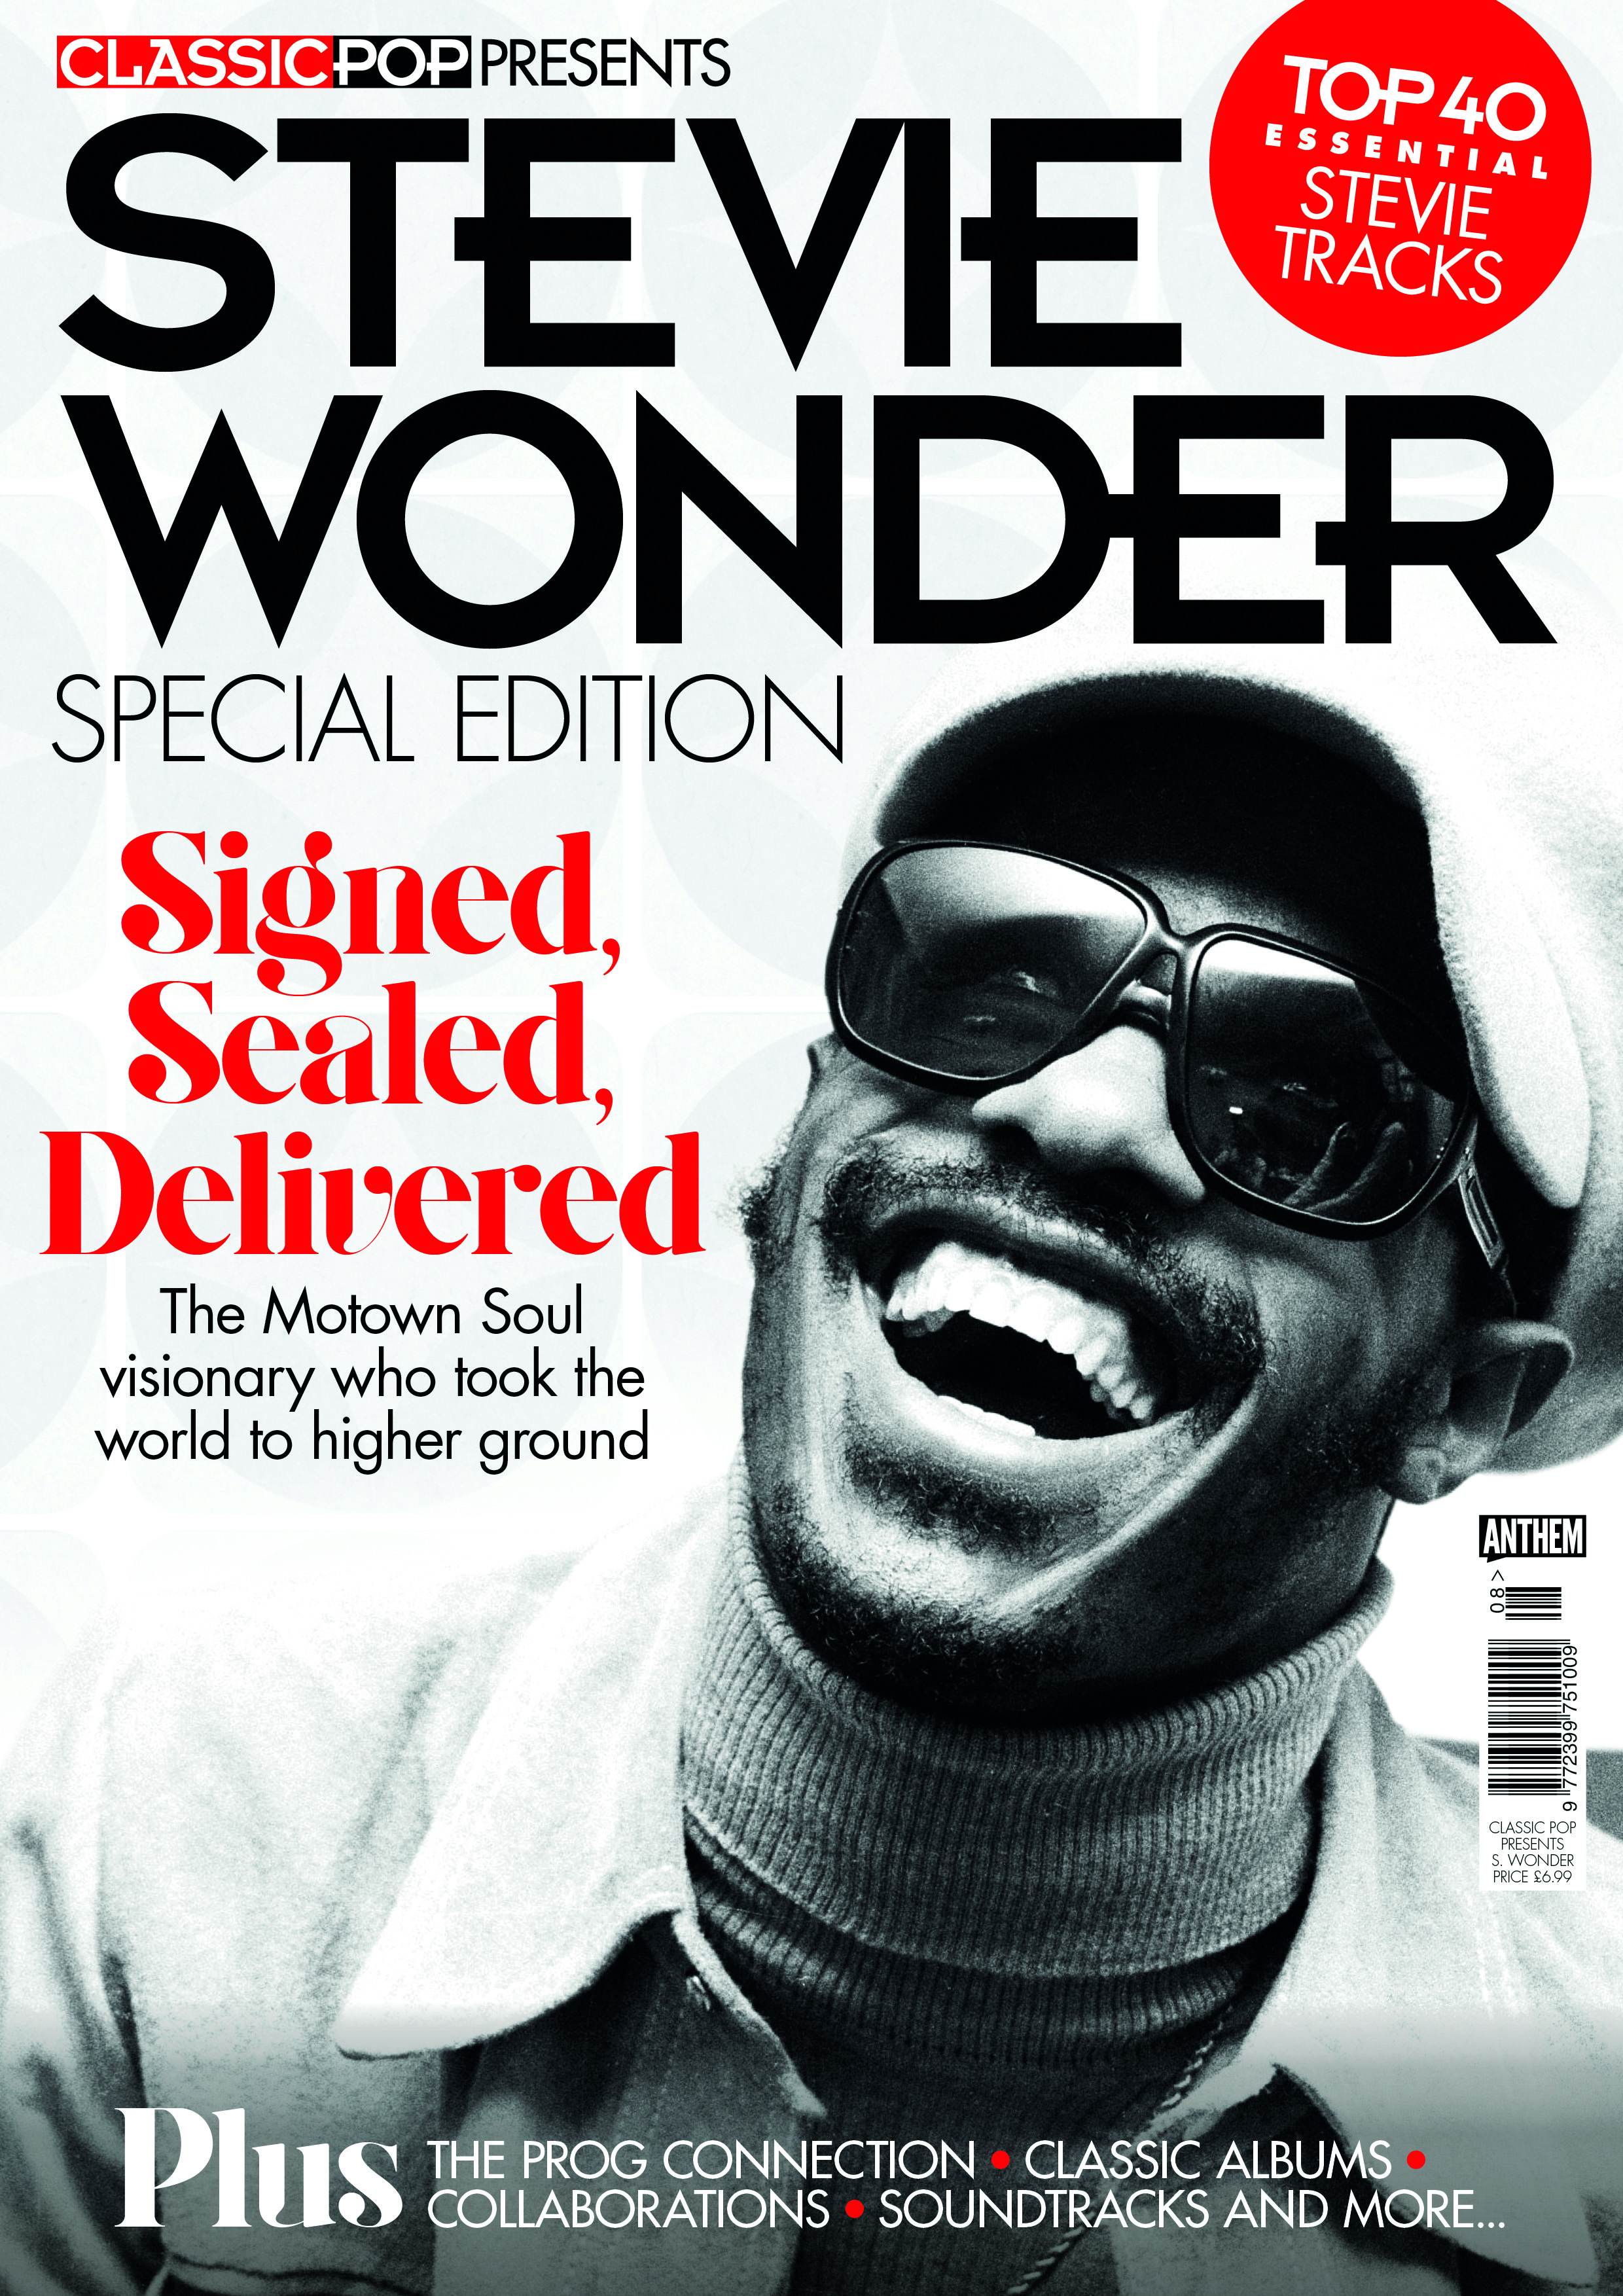 Classic Pop Presents: Stevie Wonder Special Edition